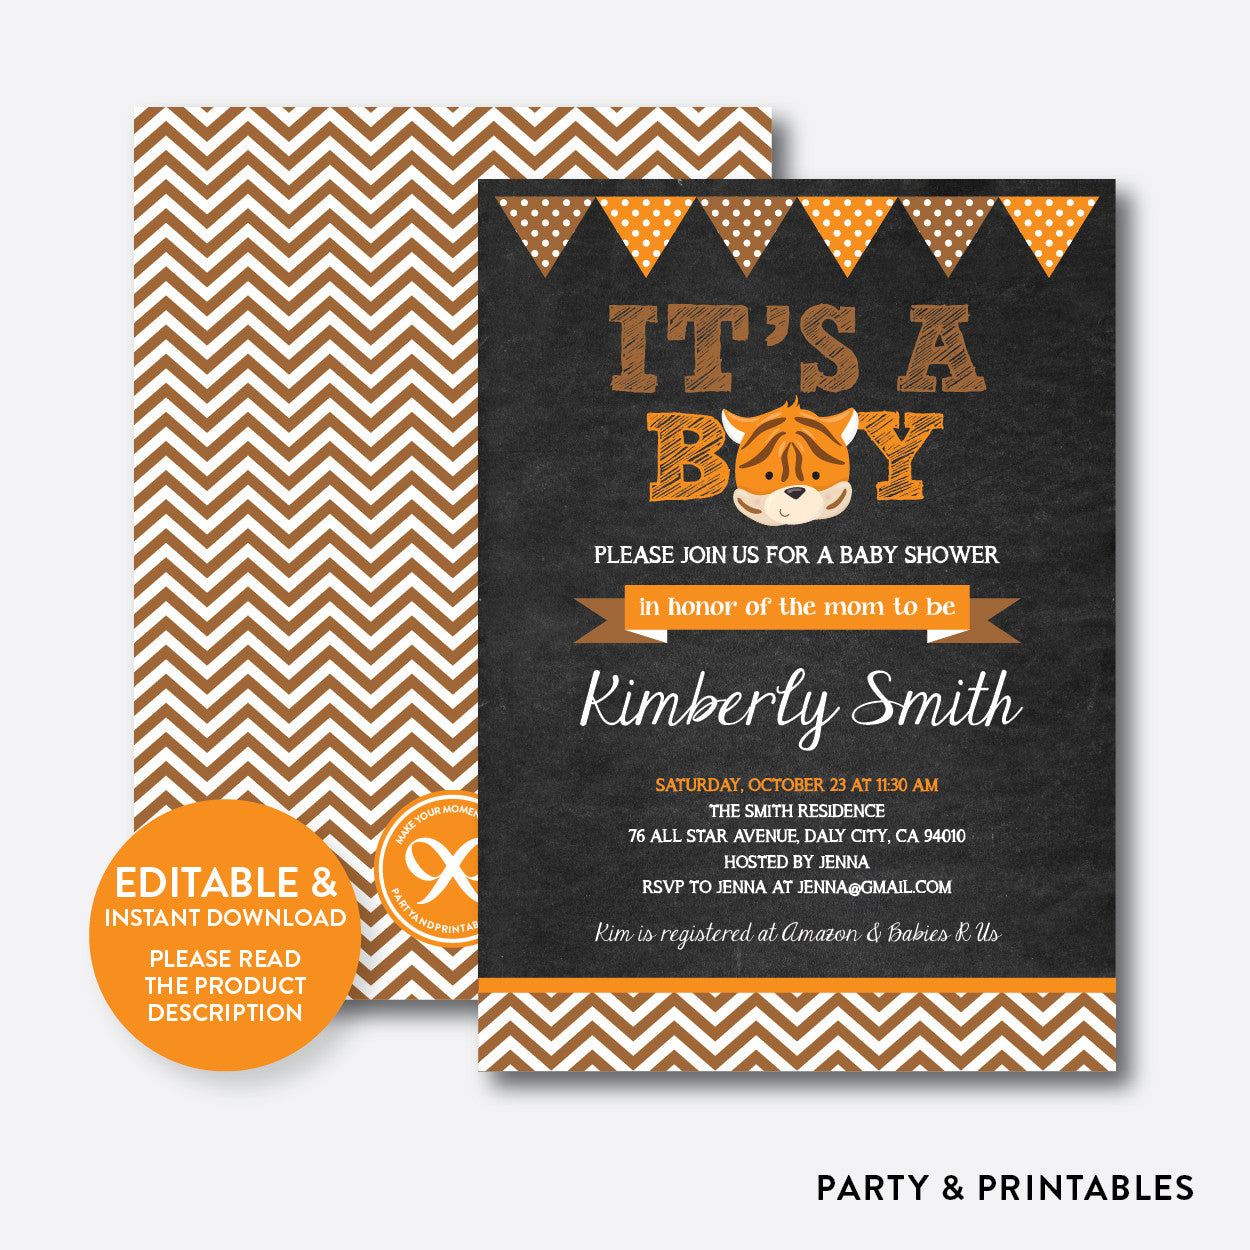 Baby Tiger Chalkboard Baby Shower Invitation / Editable / Instant Download (CBS.11), invitation - Party and Printables